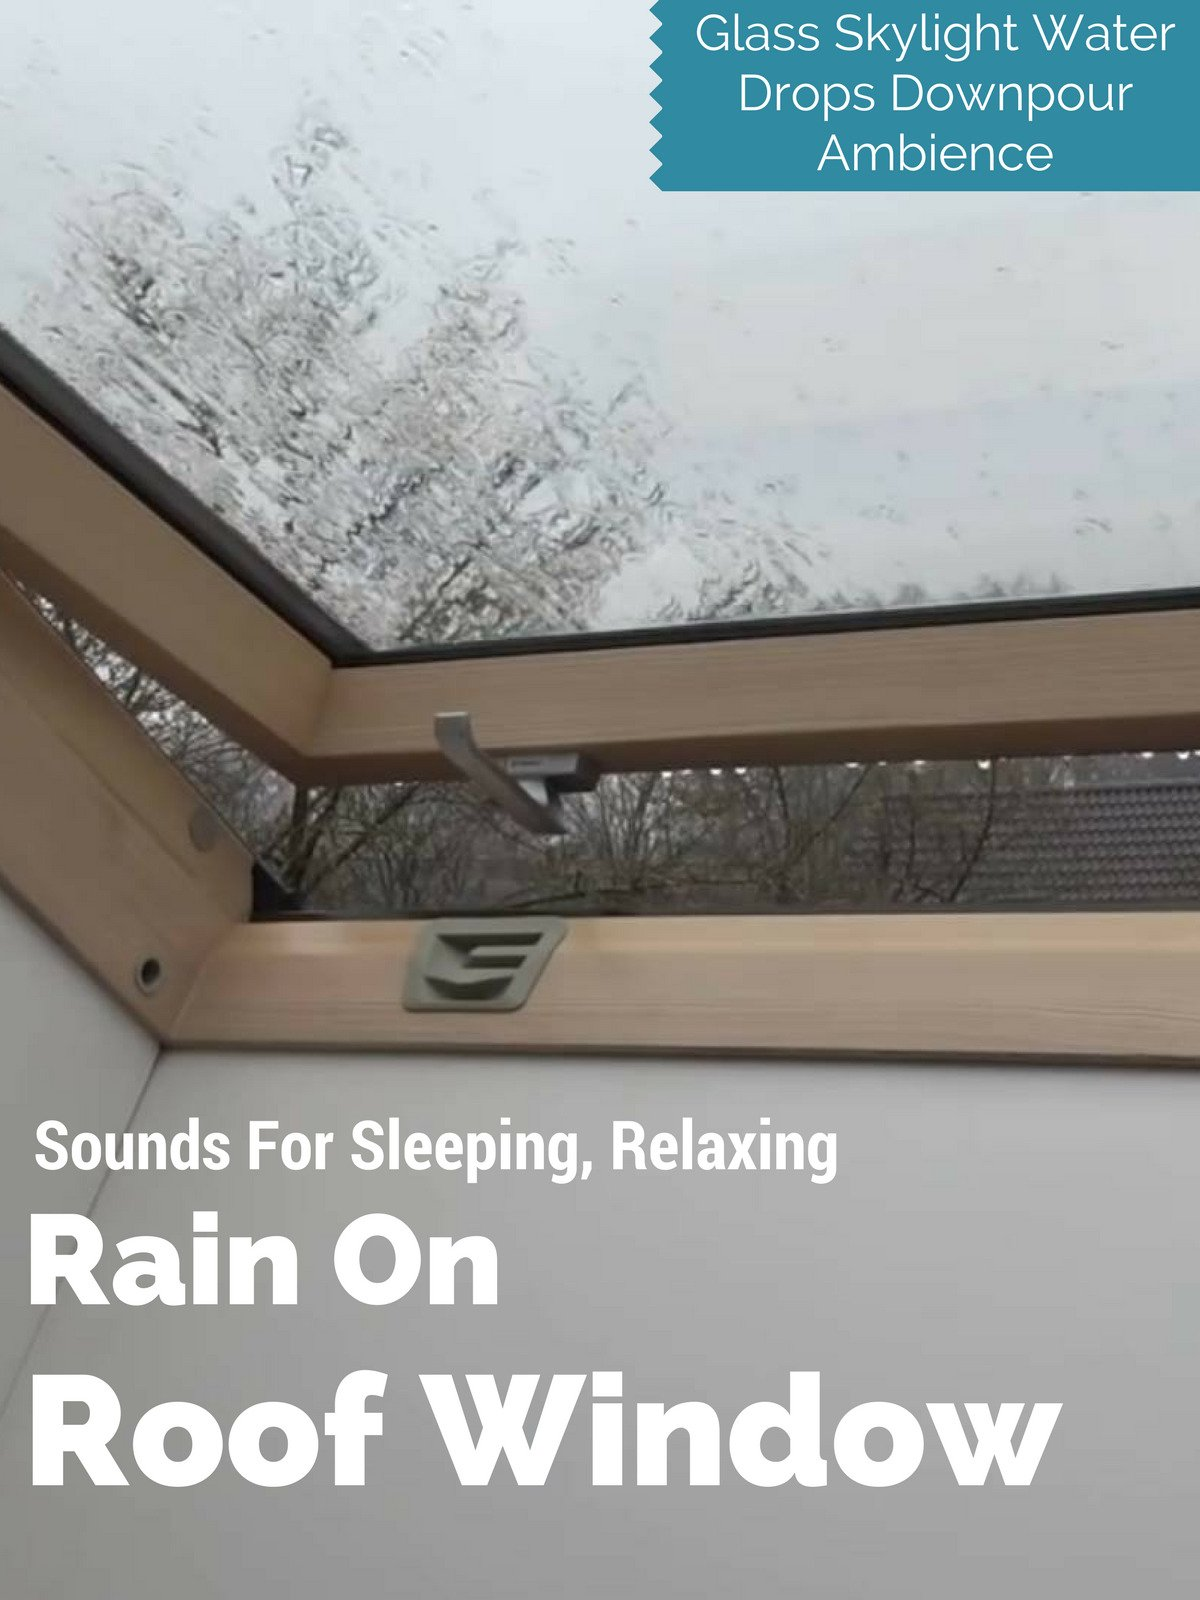 Rain on Roof Window Sounds for Sleeping, Relaxing